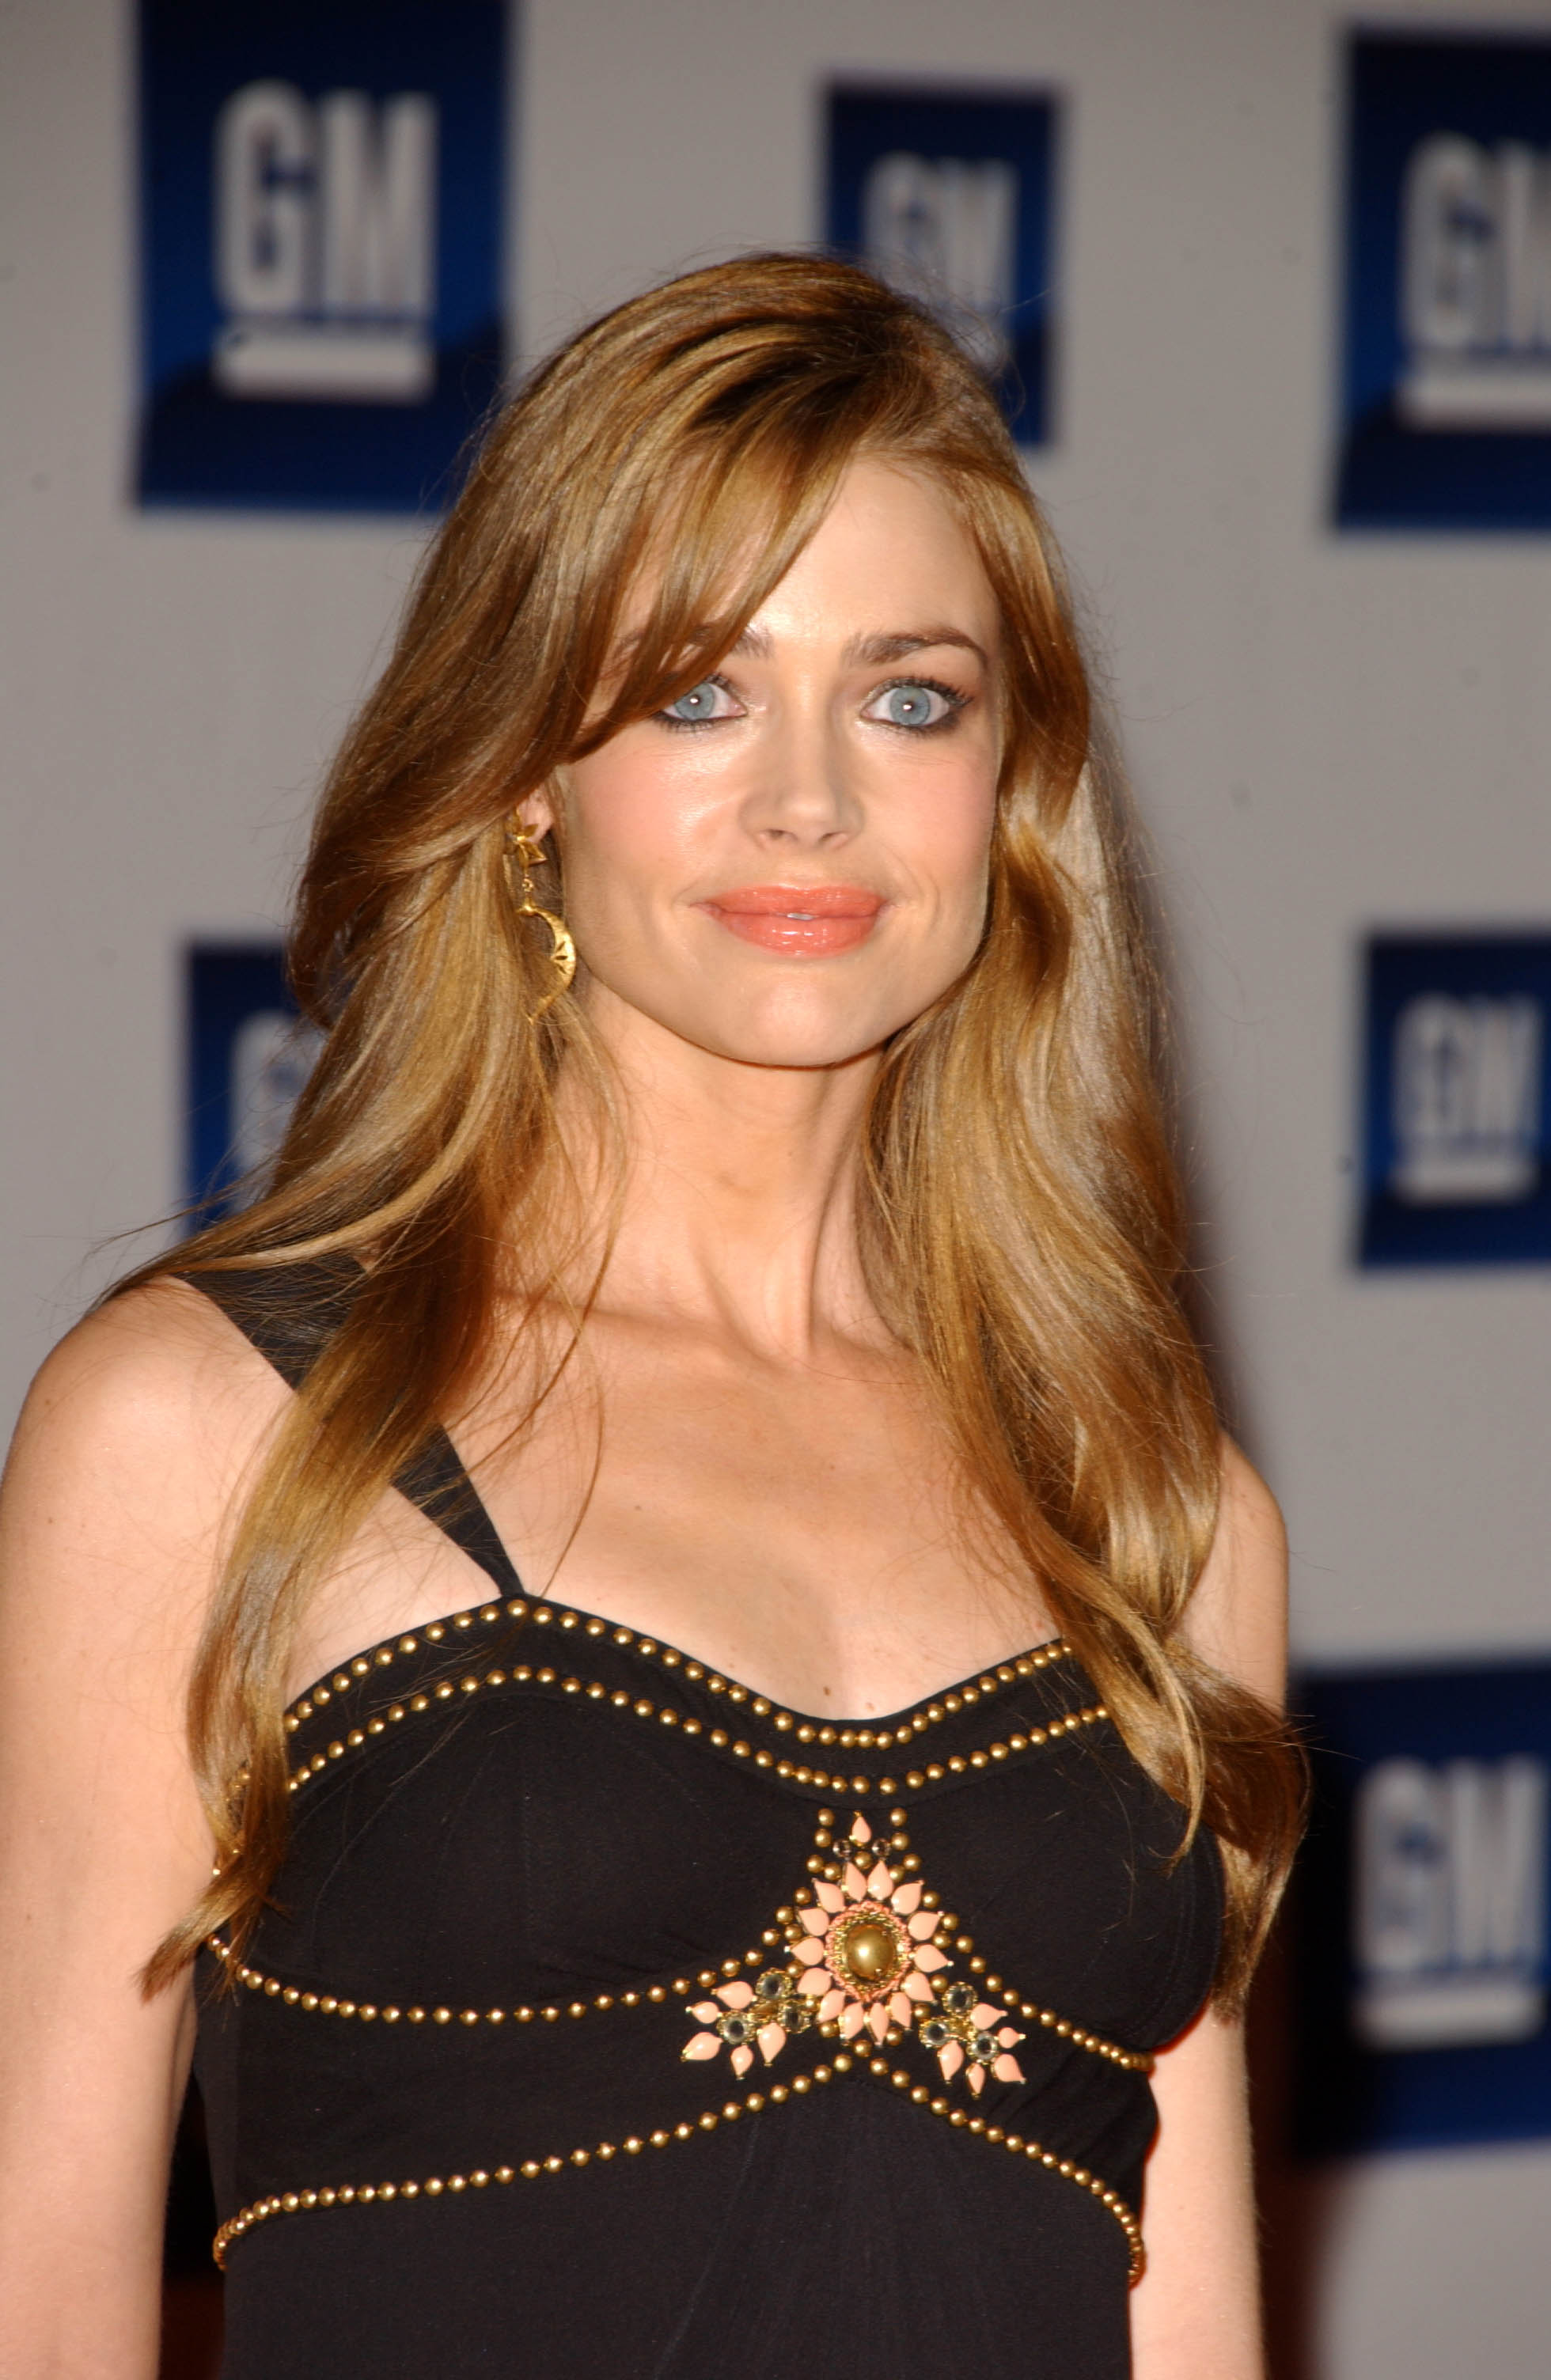 77673_Celebutopia.net_Denise_Richards_01_122_240lo.jpg